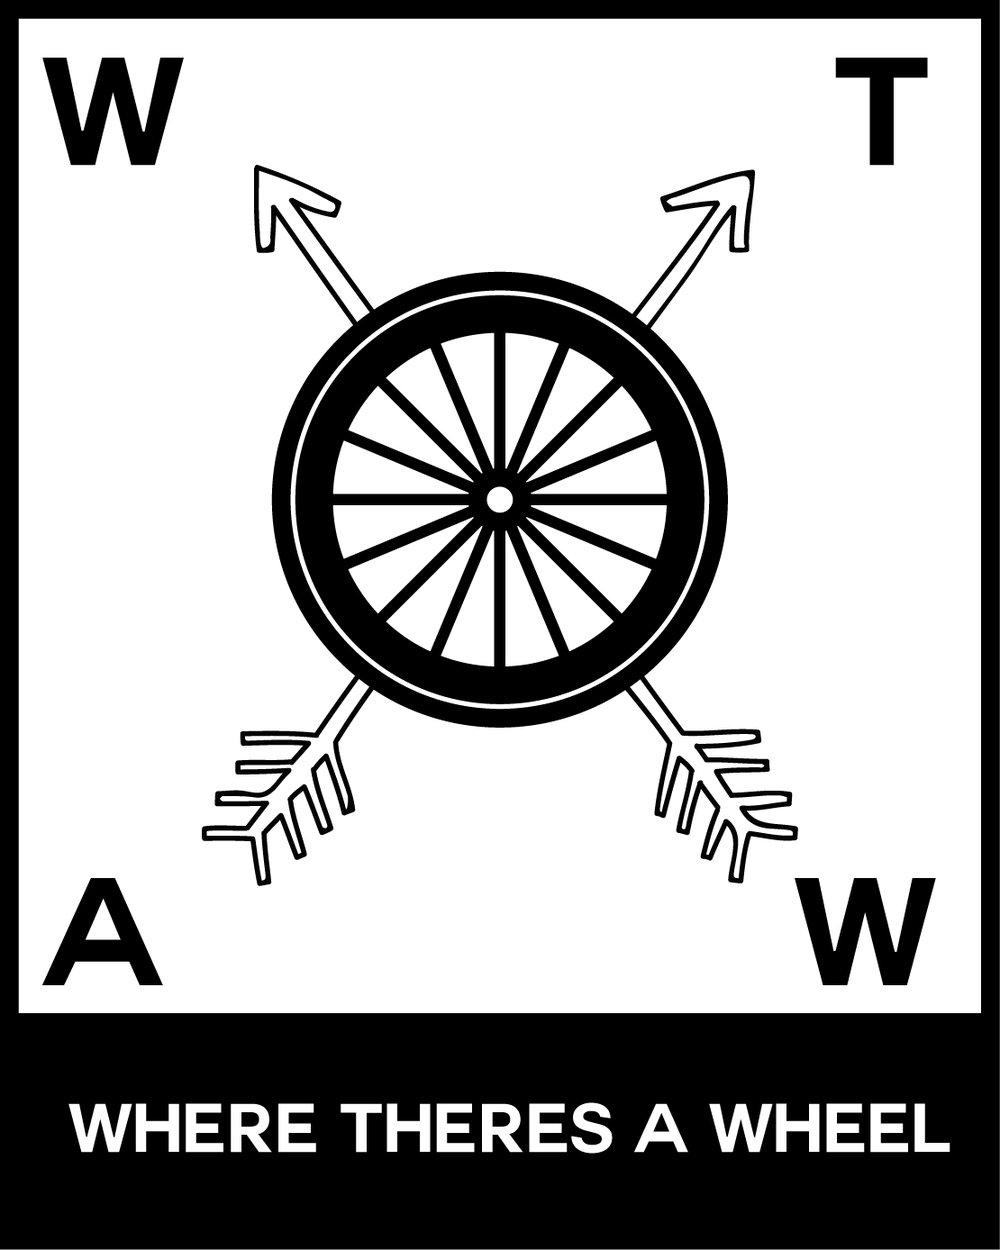 where-theres-a-wheel-logo